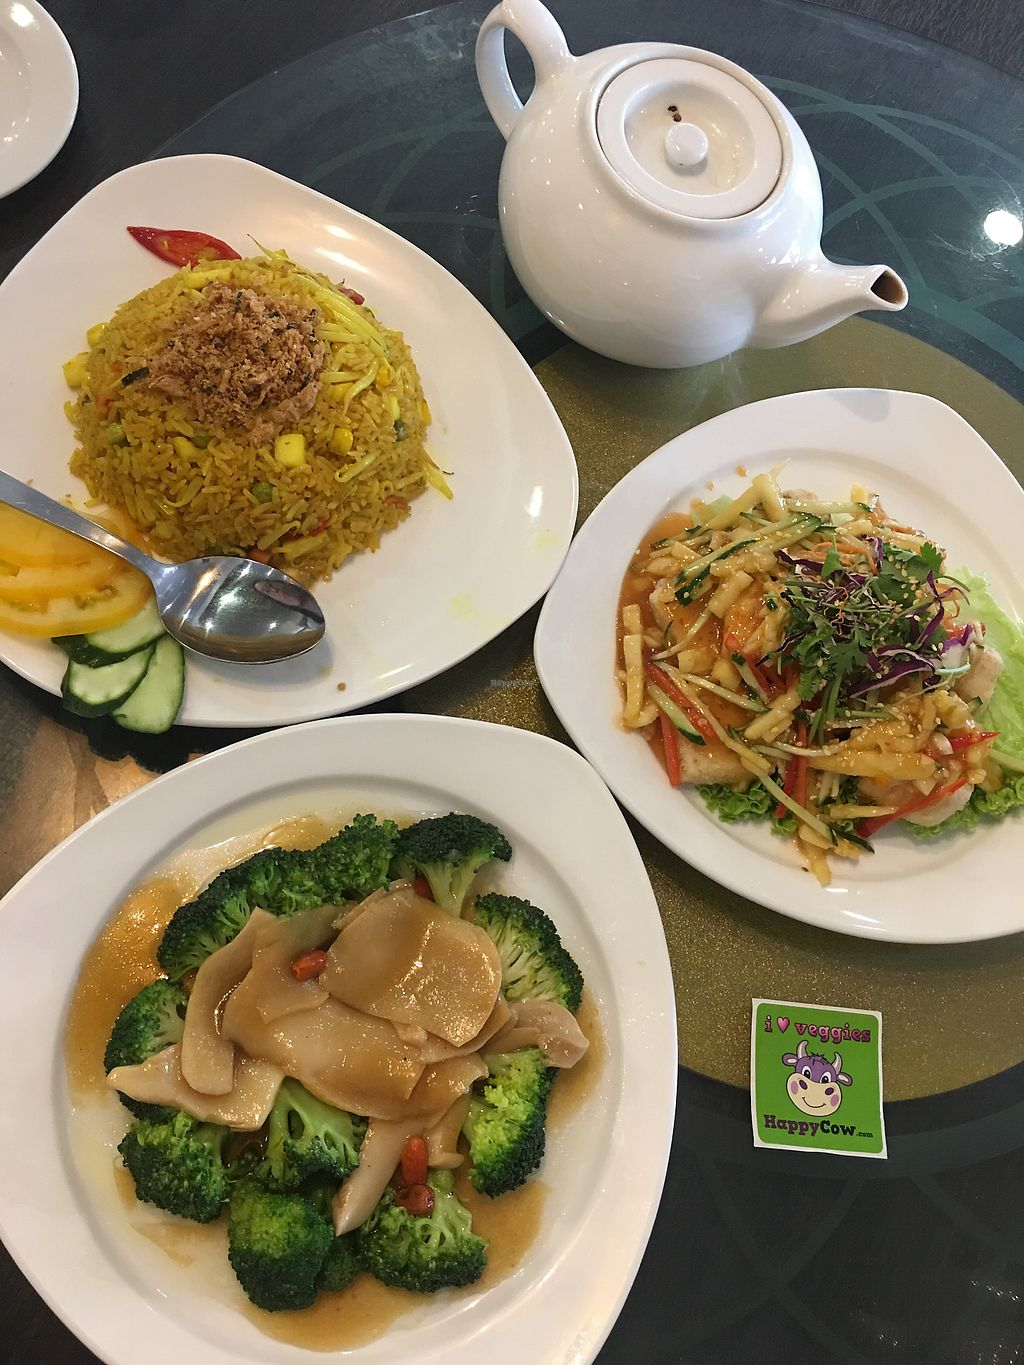 "Photo of New Fut Kai Vegetarian Restaurant  by <a href=""/members/profile/BernardKoh"">BernardKoh</a> <br/>CNY Feast <br/> February 19, 2018  - <a href='/contact/abuse/image/12040/361169'>Report</a>"